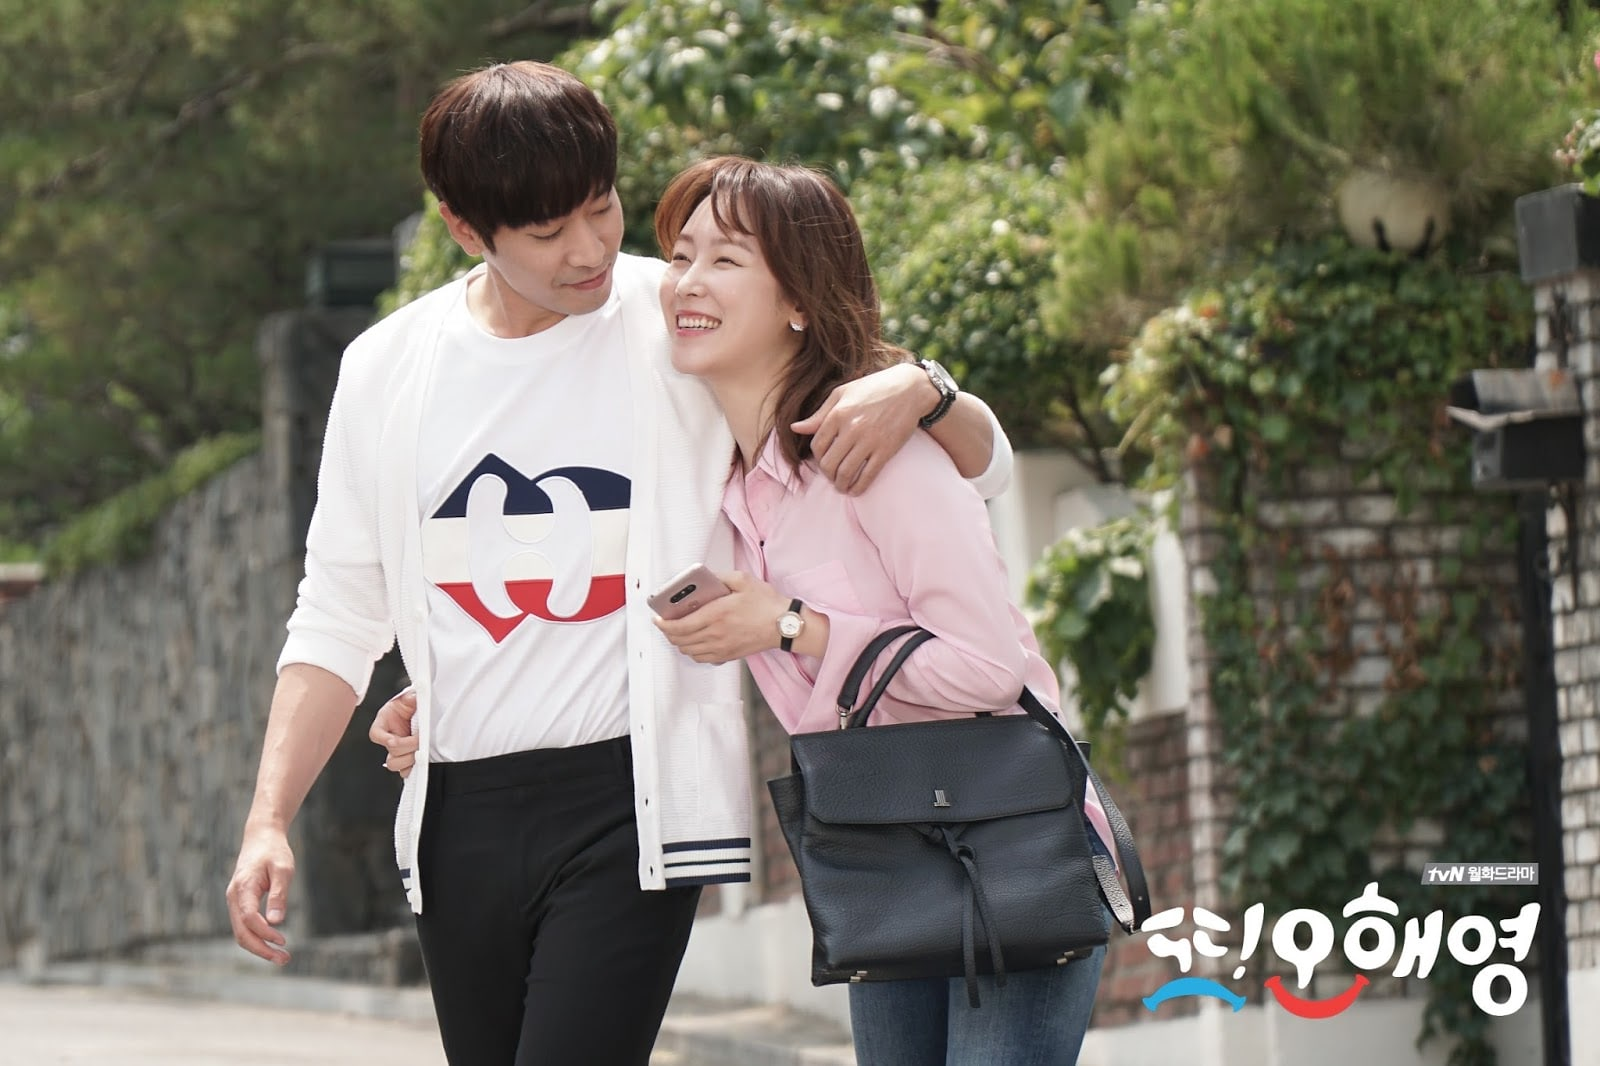 Director Of Another Oh Hae Young To Return To Small Screen With New Romantic Comedy